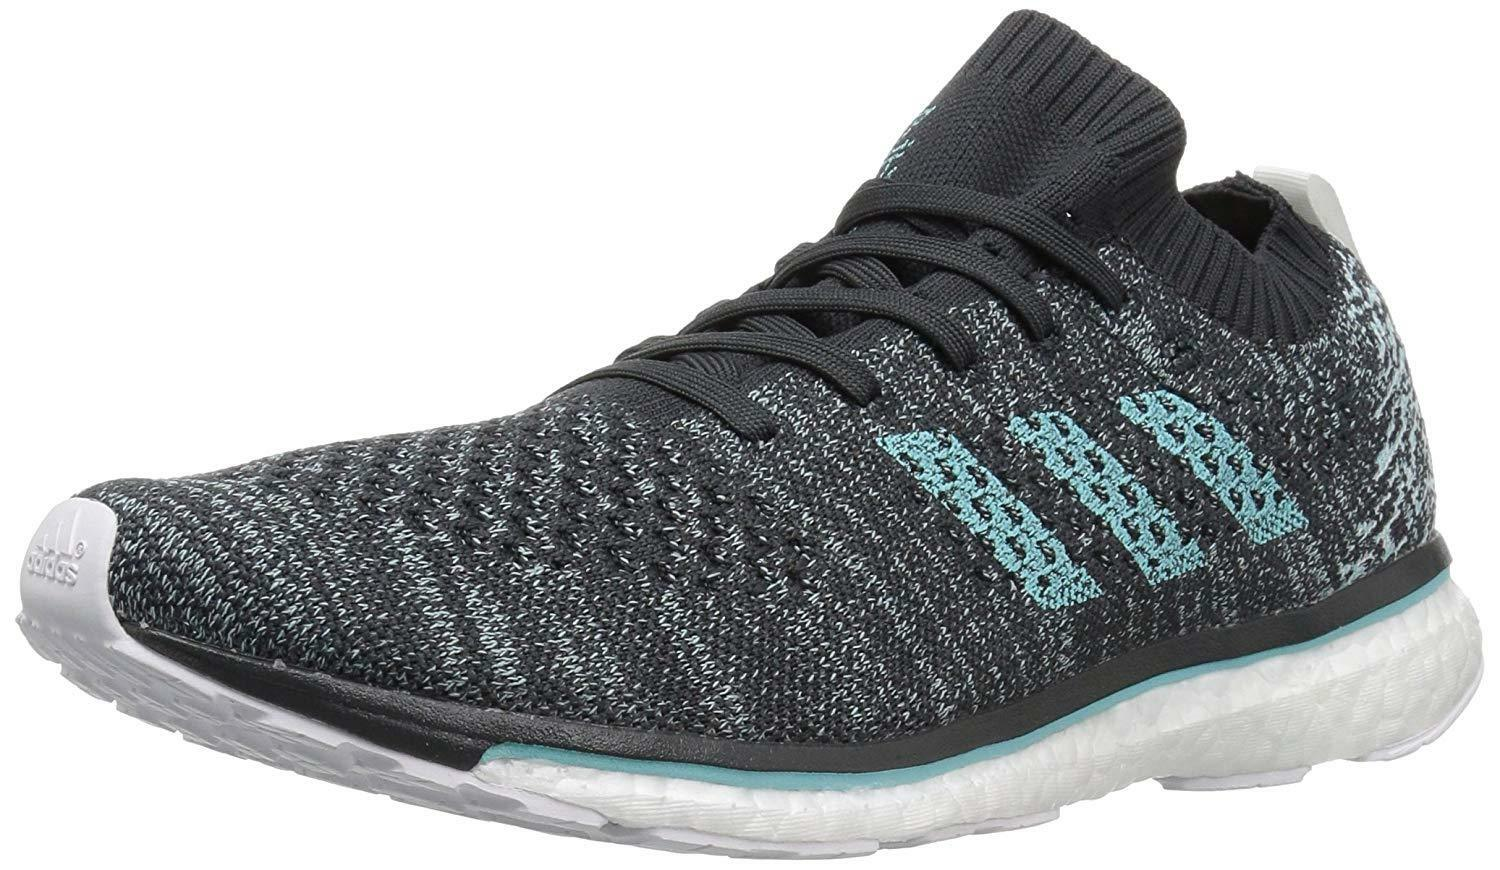 reputable site 833f1 11194 Adidas Originals Adizero Prime Parley Parley Parley Running shoes 50acd4